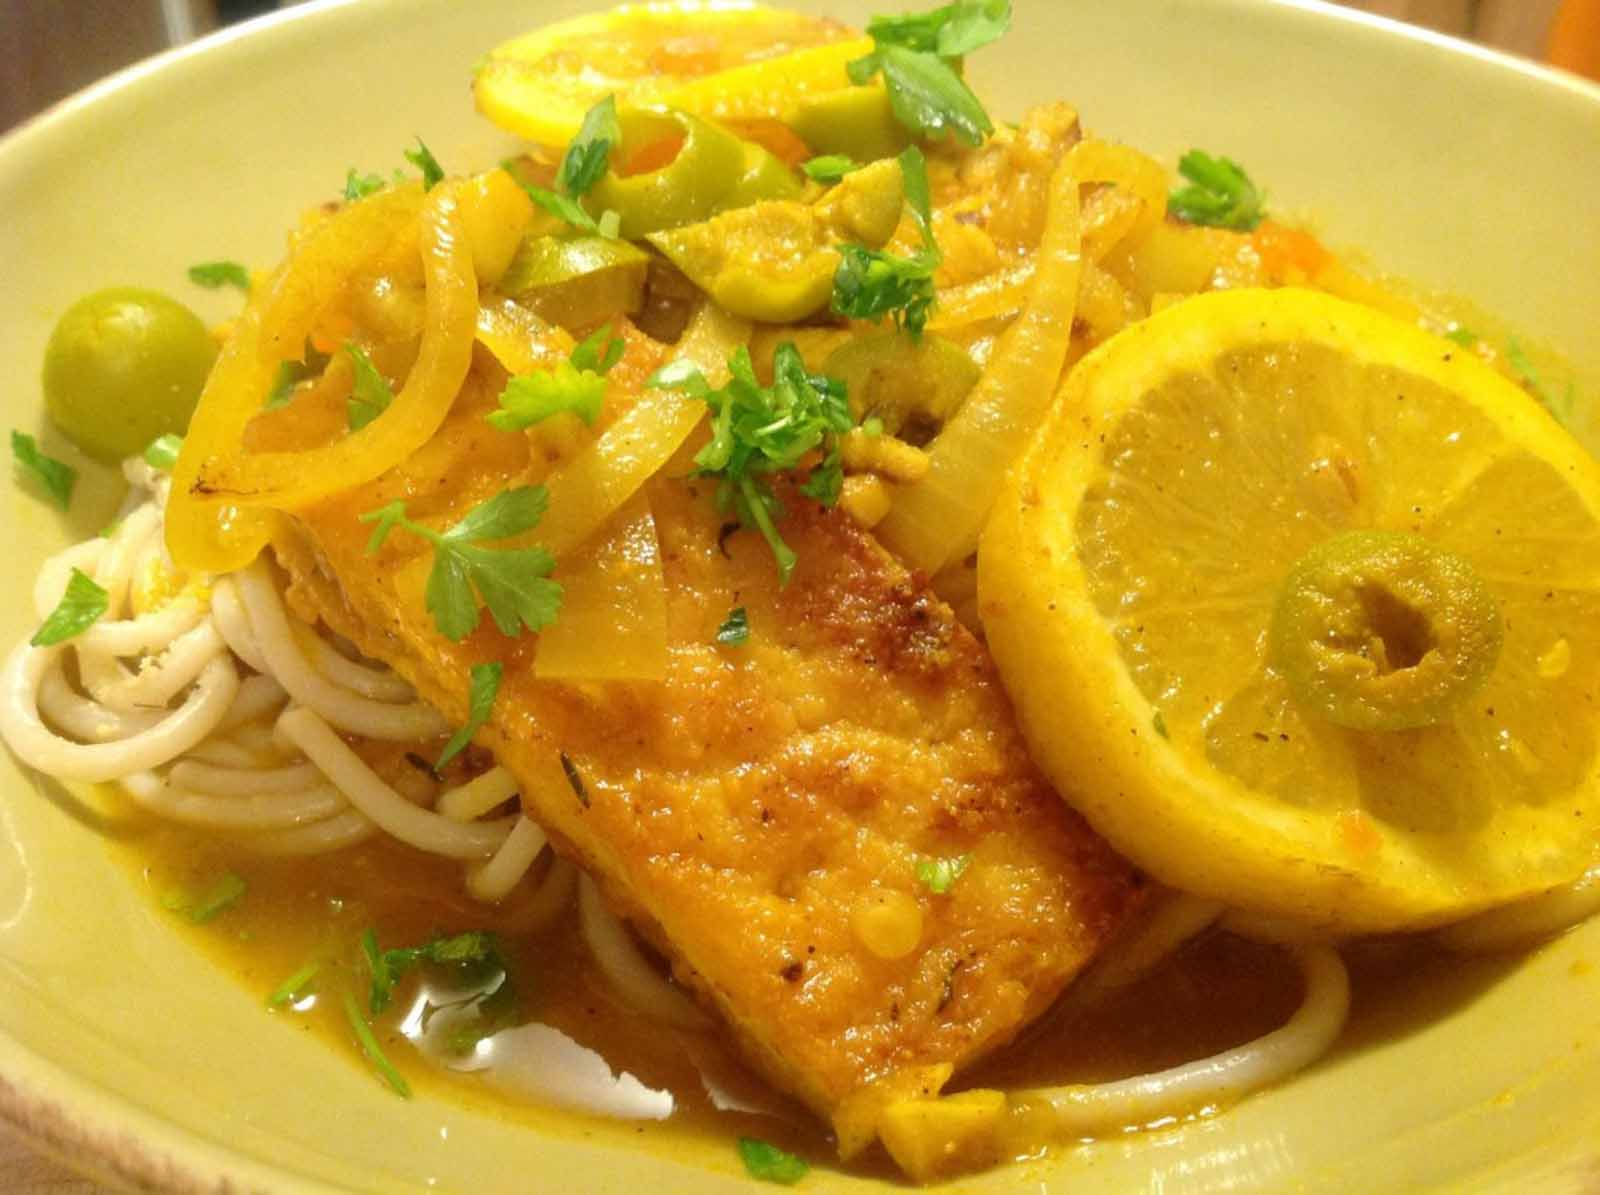 How to Add Ethnic Flavors to Dishes